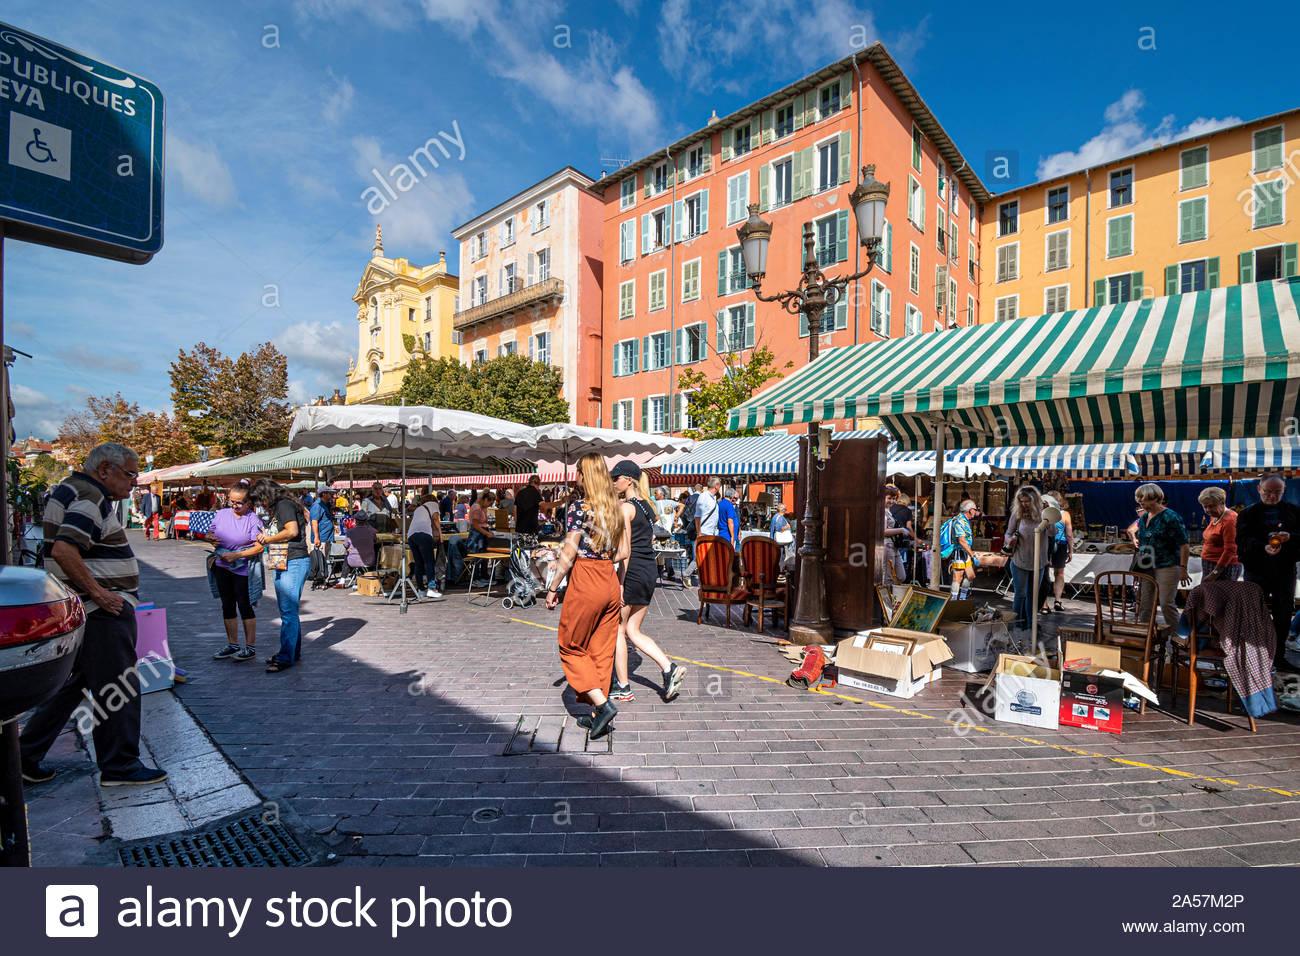 Tourists and local French enjoy a summer day in the outdoor Cours Saleya flea market marketplace in Old Town Nice France on the Riviera Stock Photo